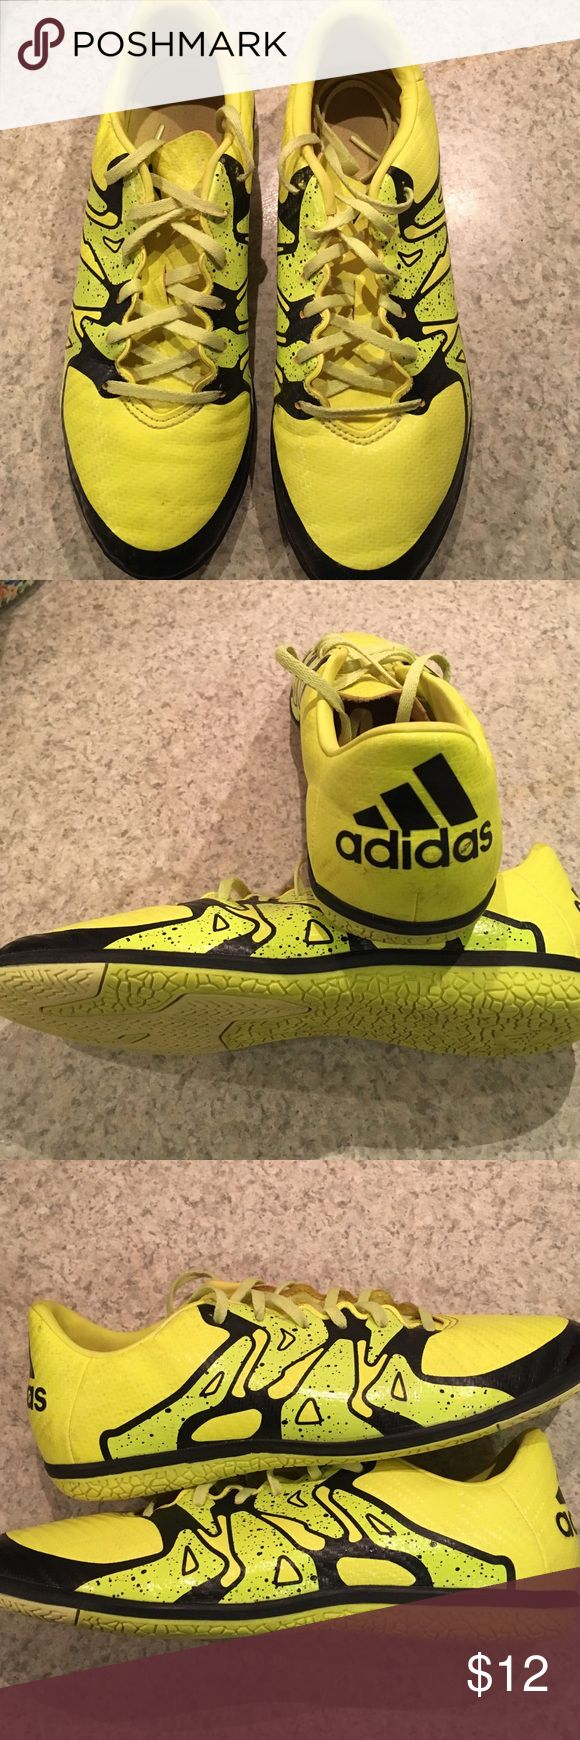 Adidas Youth Indoor Soccer Shoes Youth indoor soccer shoes. Worn one indoor season. Excellent condition. Smoke free home. adidas Shoes Sneakers